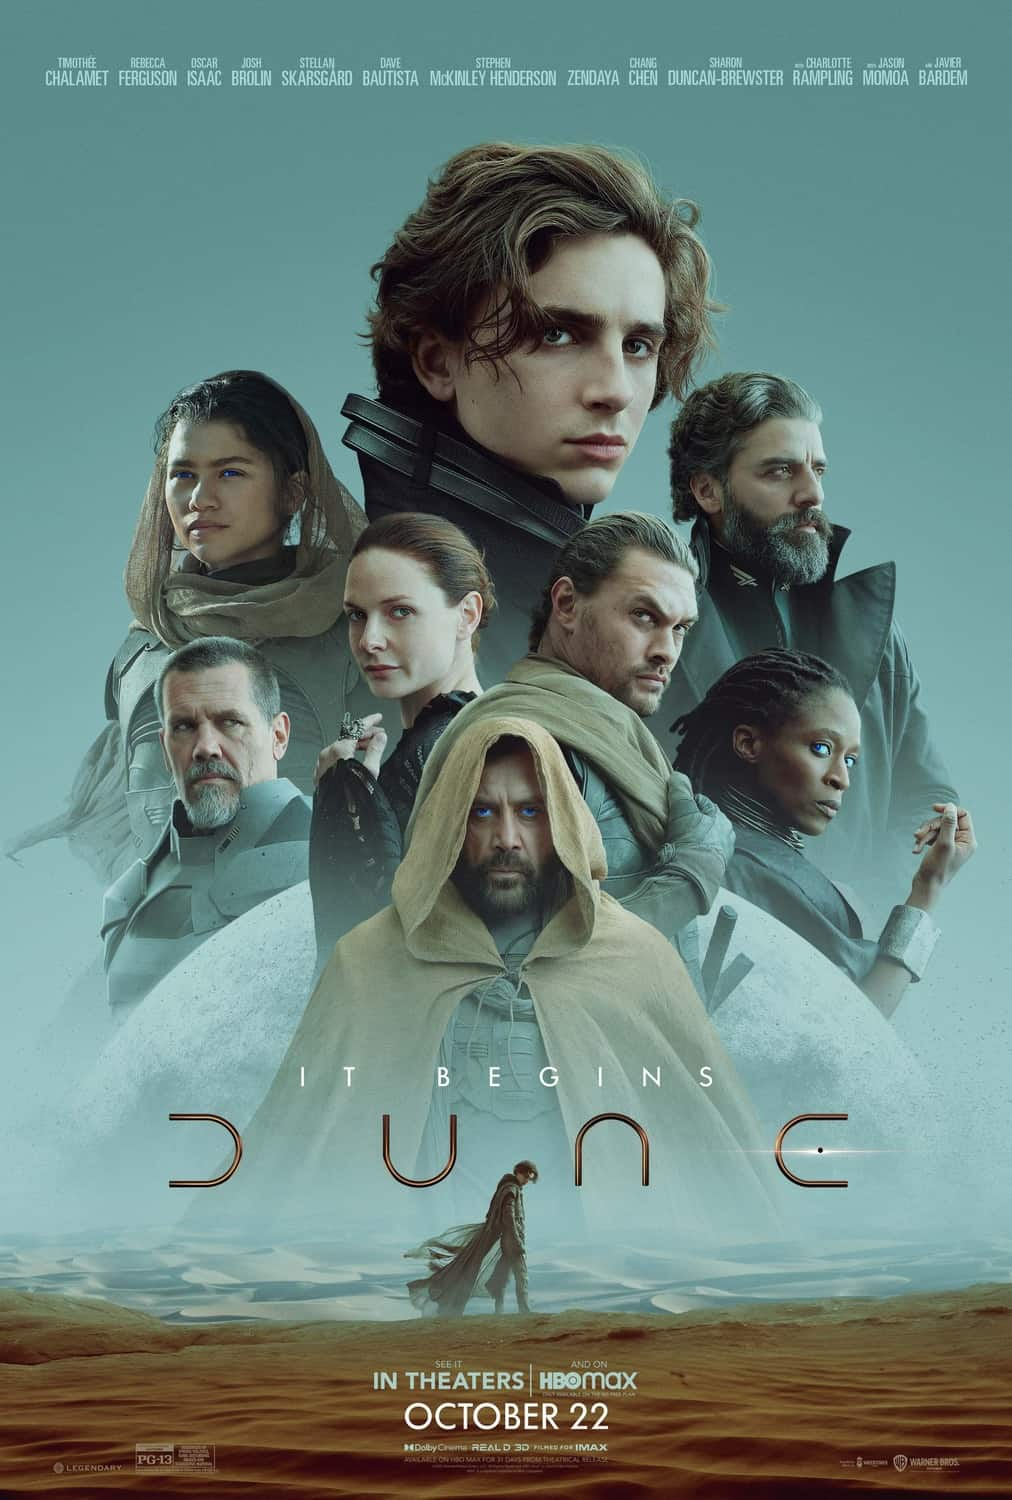 Dune 2021 HBO Max streaming IMAX theaters promo poster